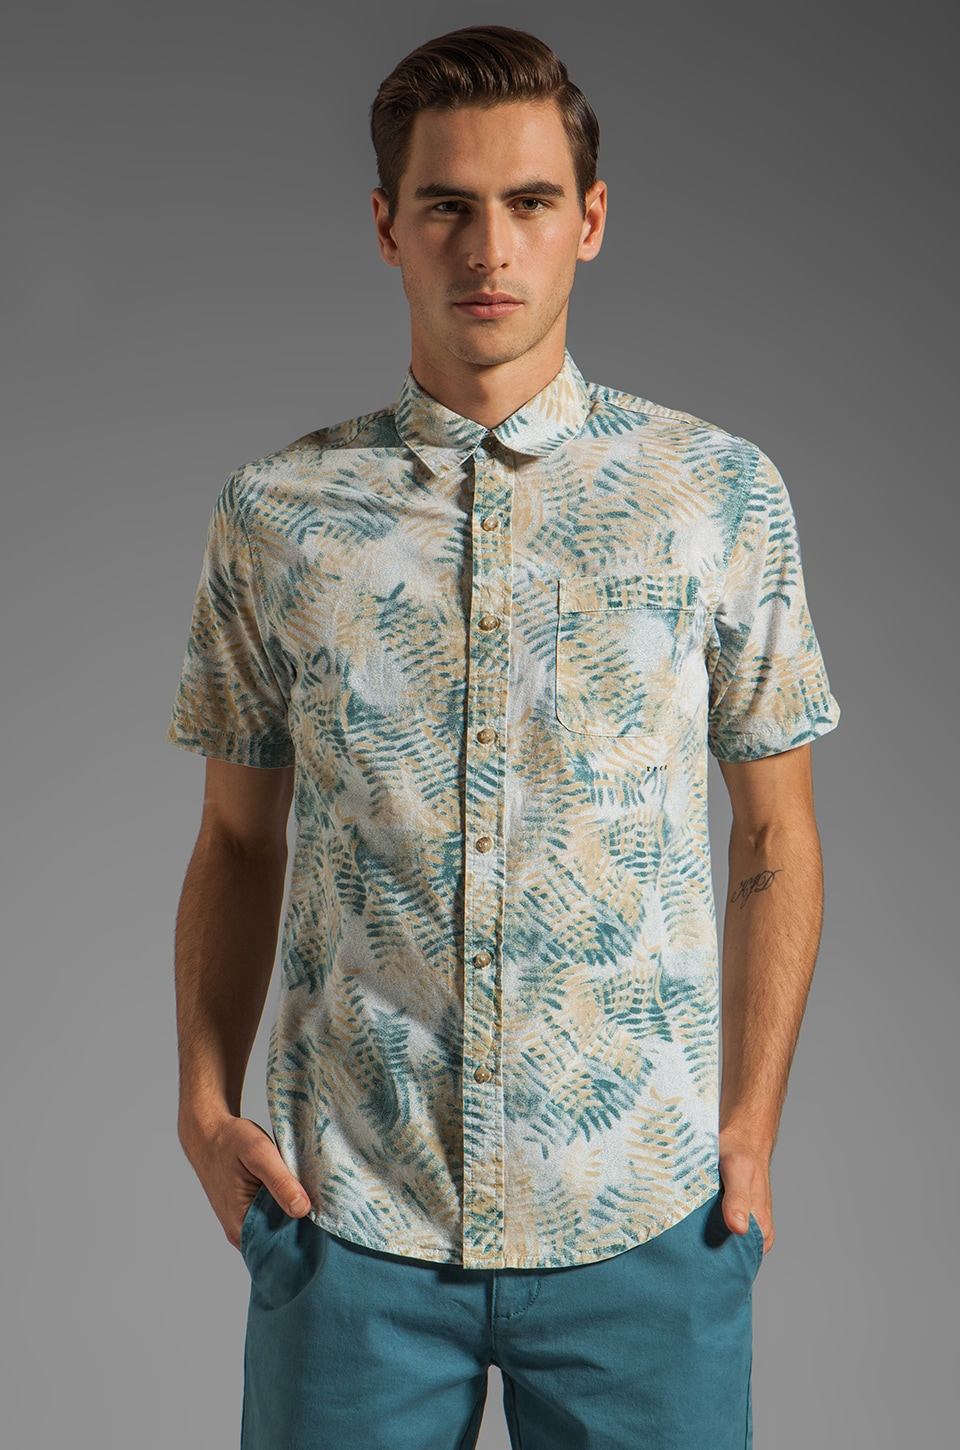 RVCA Fern N Burn S/S Shirt in Vintage White